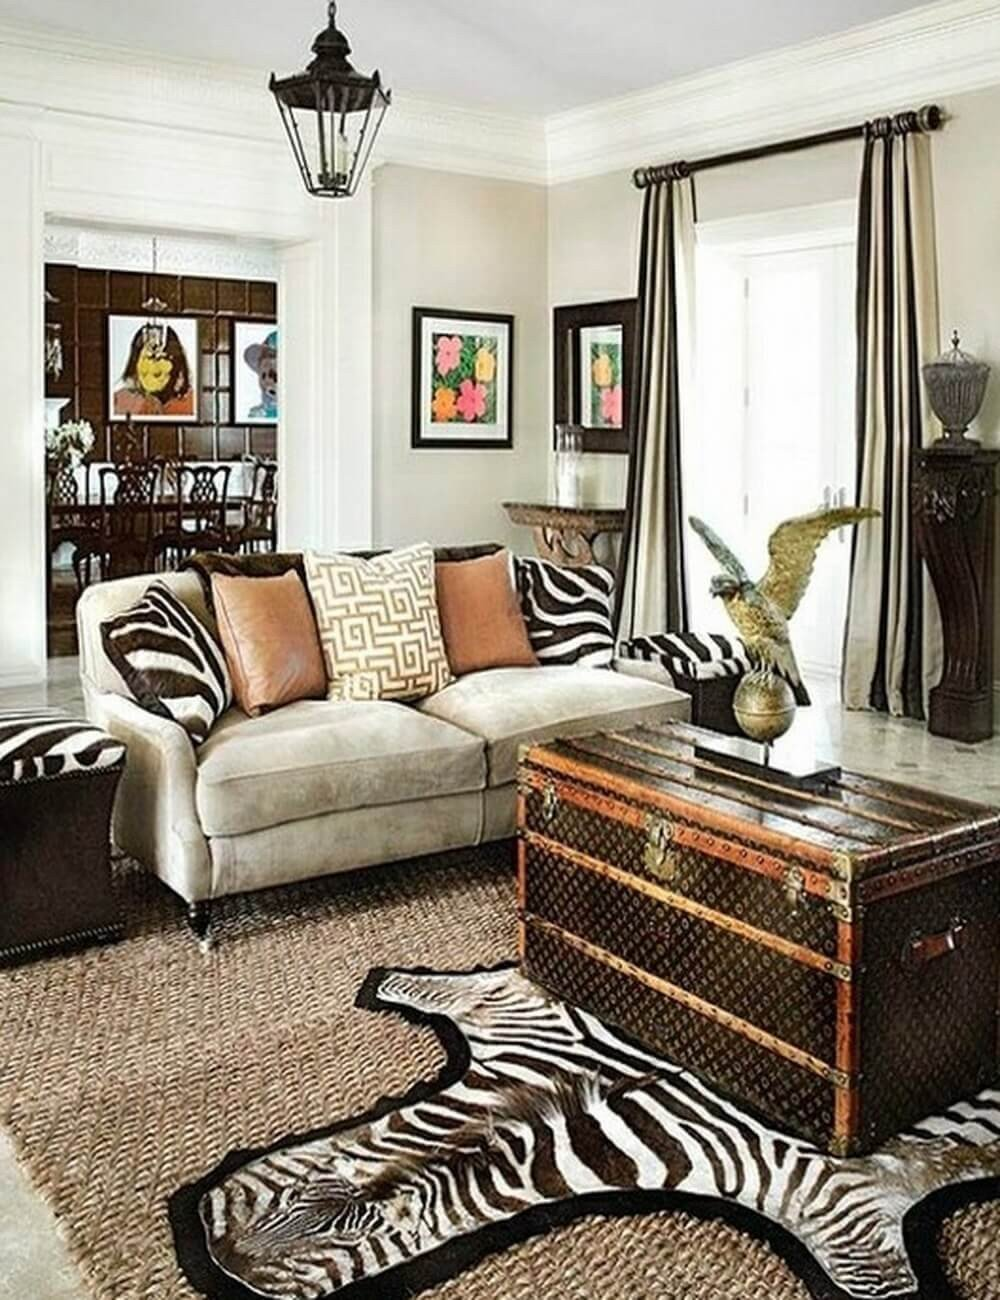 Zebra Decor for Living Room Make Your Rooms Look Fierce and Wild by Using Zebra Print